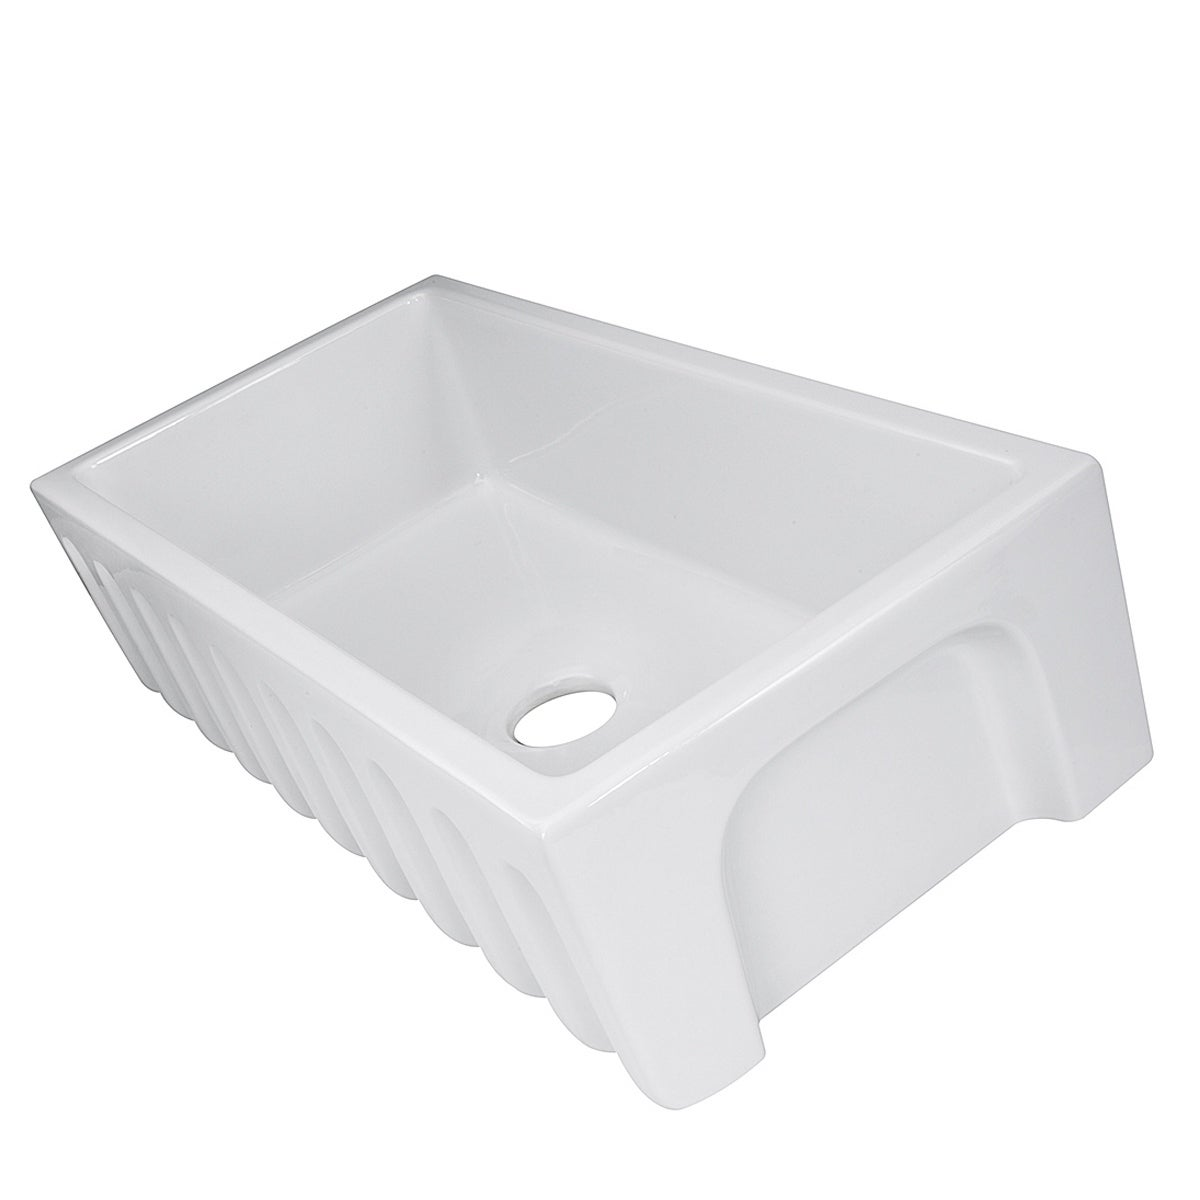 Highpoint Collection White 36 Inch Single Bowl Rectangle Fireclay Farmhouse Kitchen Sink Free Shipping Today 10363453